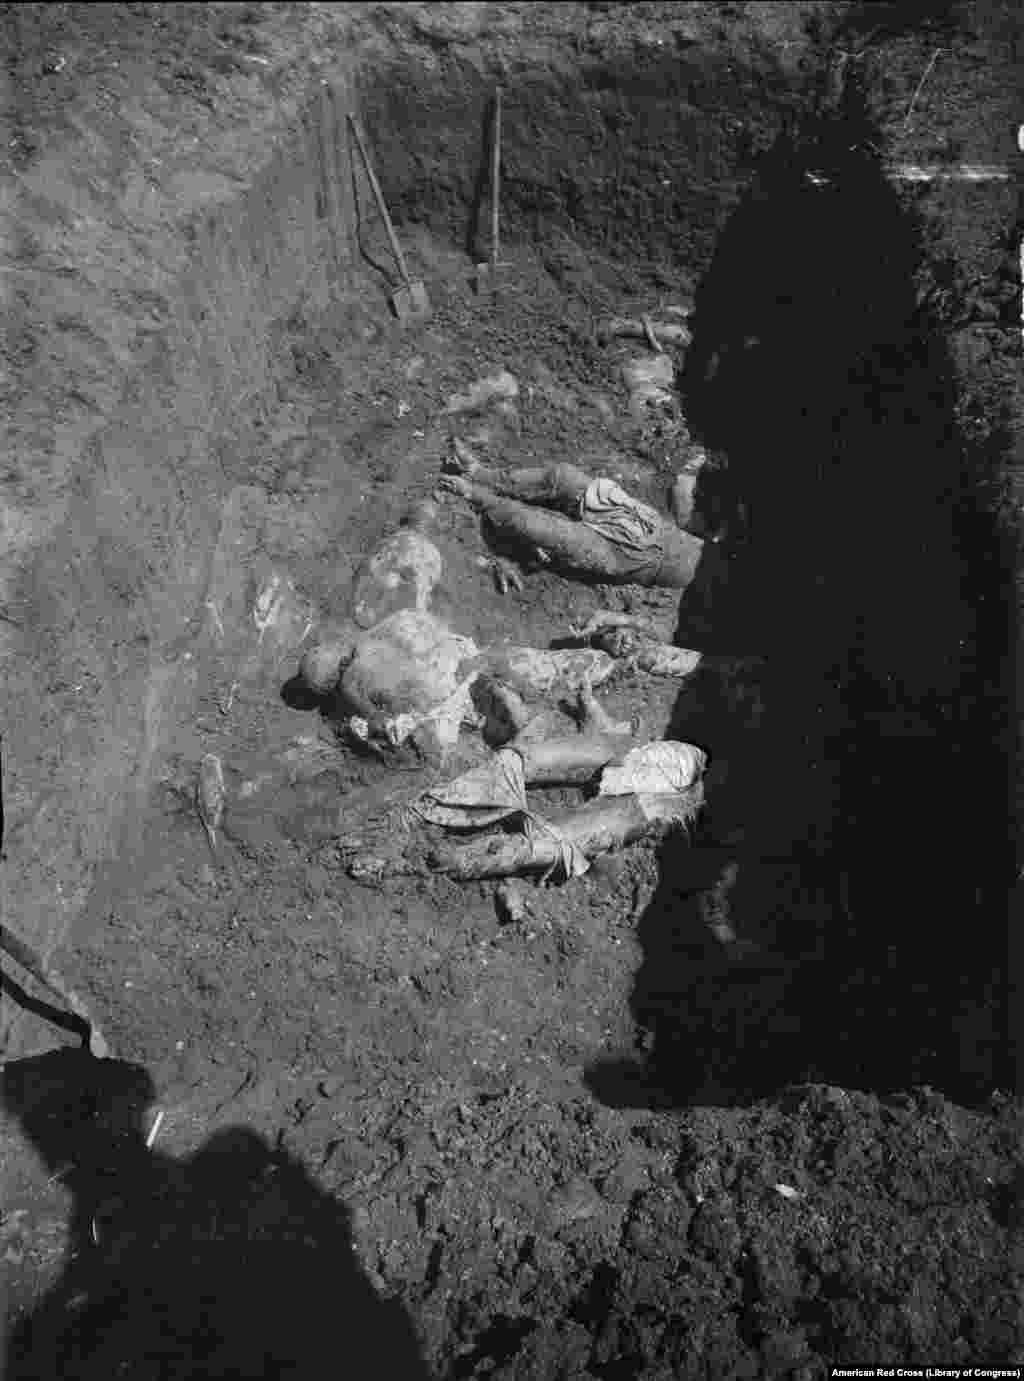 Bodies uncovered in Kharkiv in 1919 after White Army forces captured the city from the Bolsheviks. The number of people estimated killed during Russia's civil war runs into the millions.